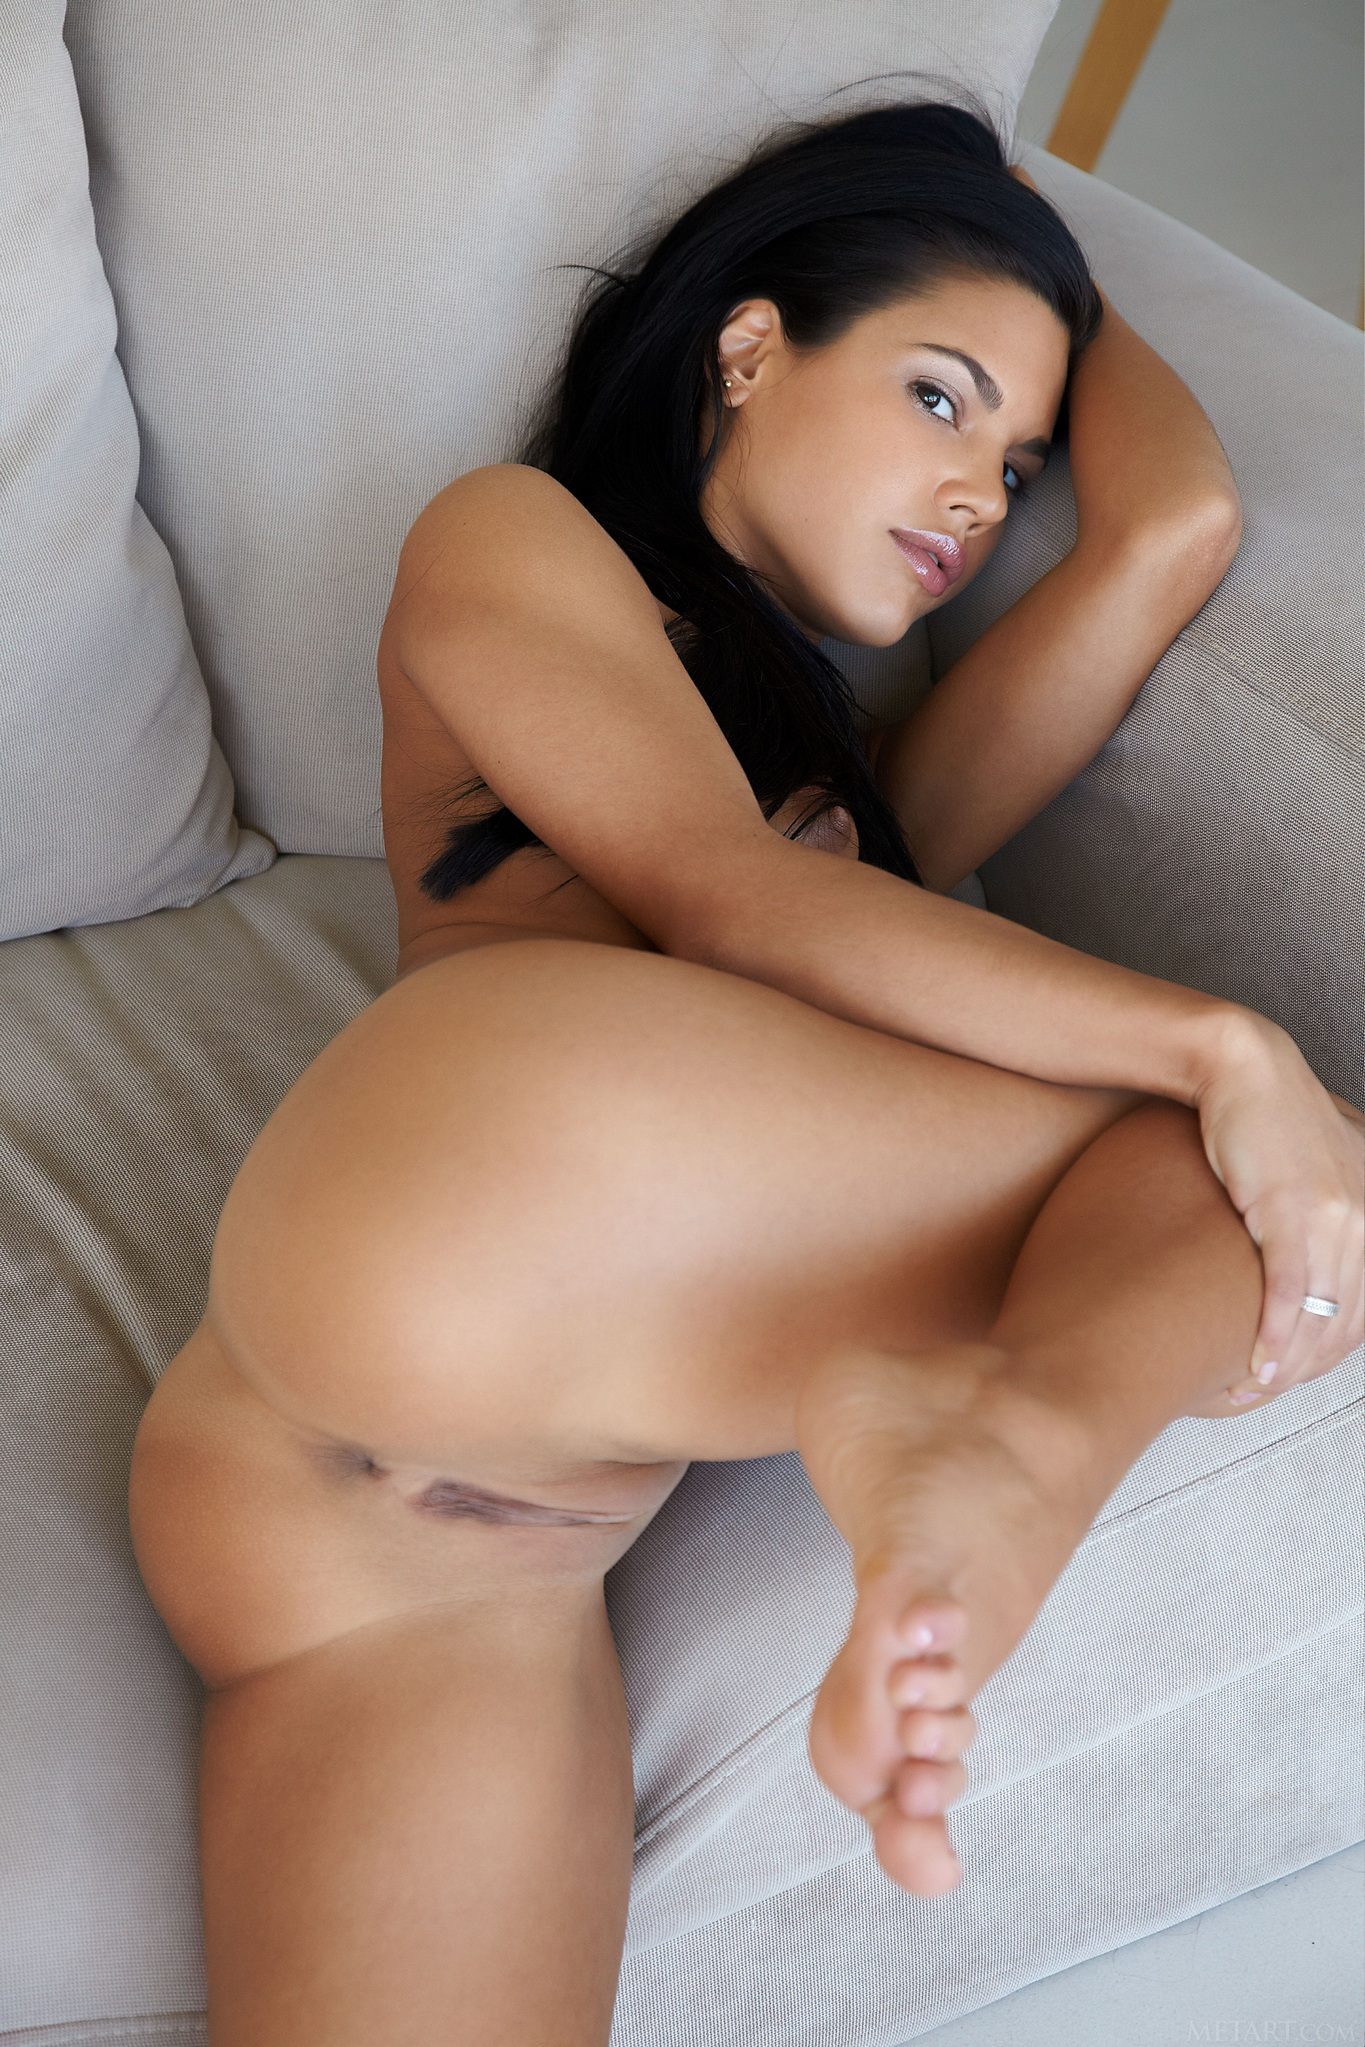 Black haired plays with anal plug 4